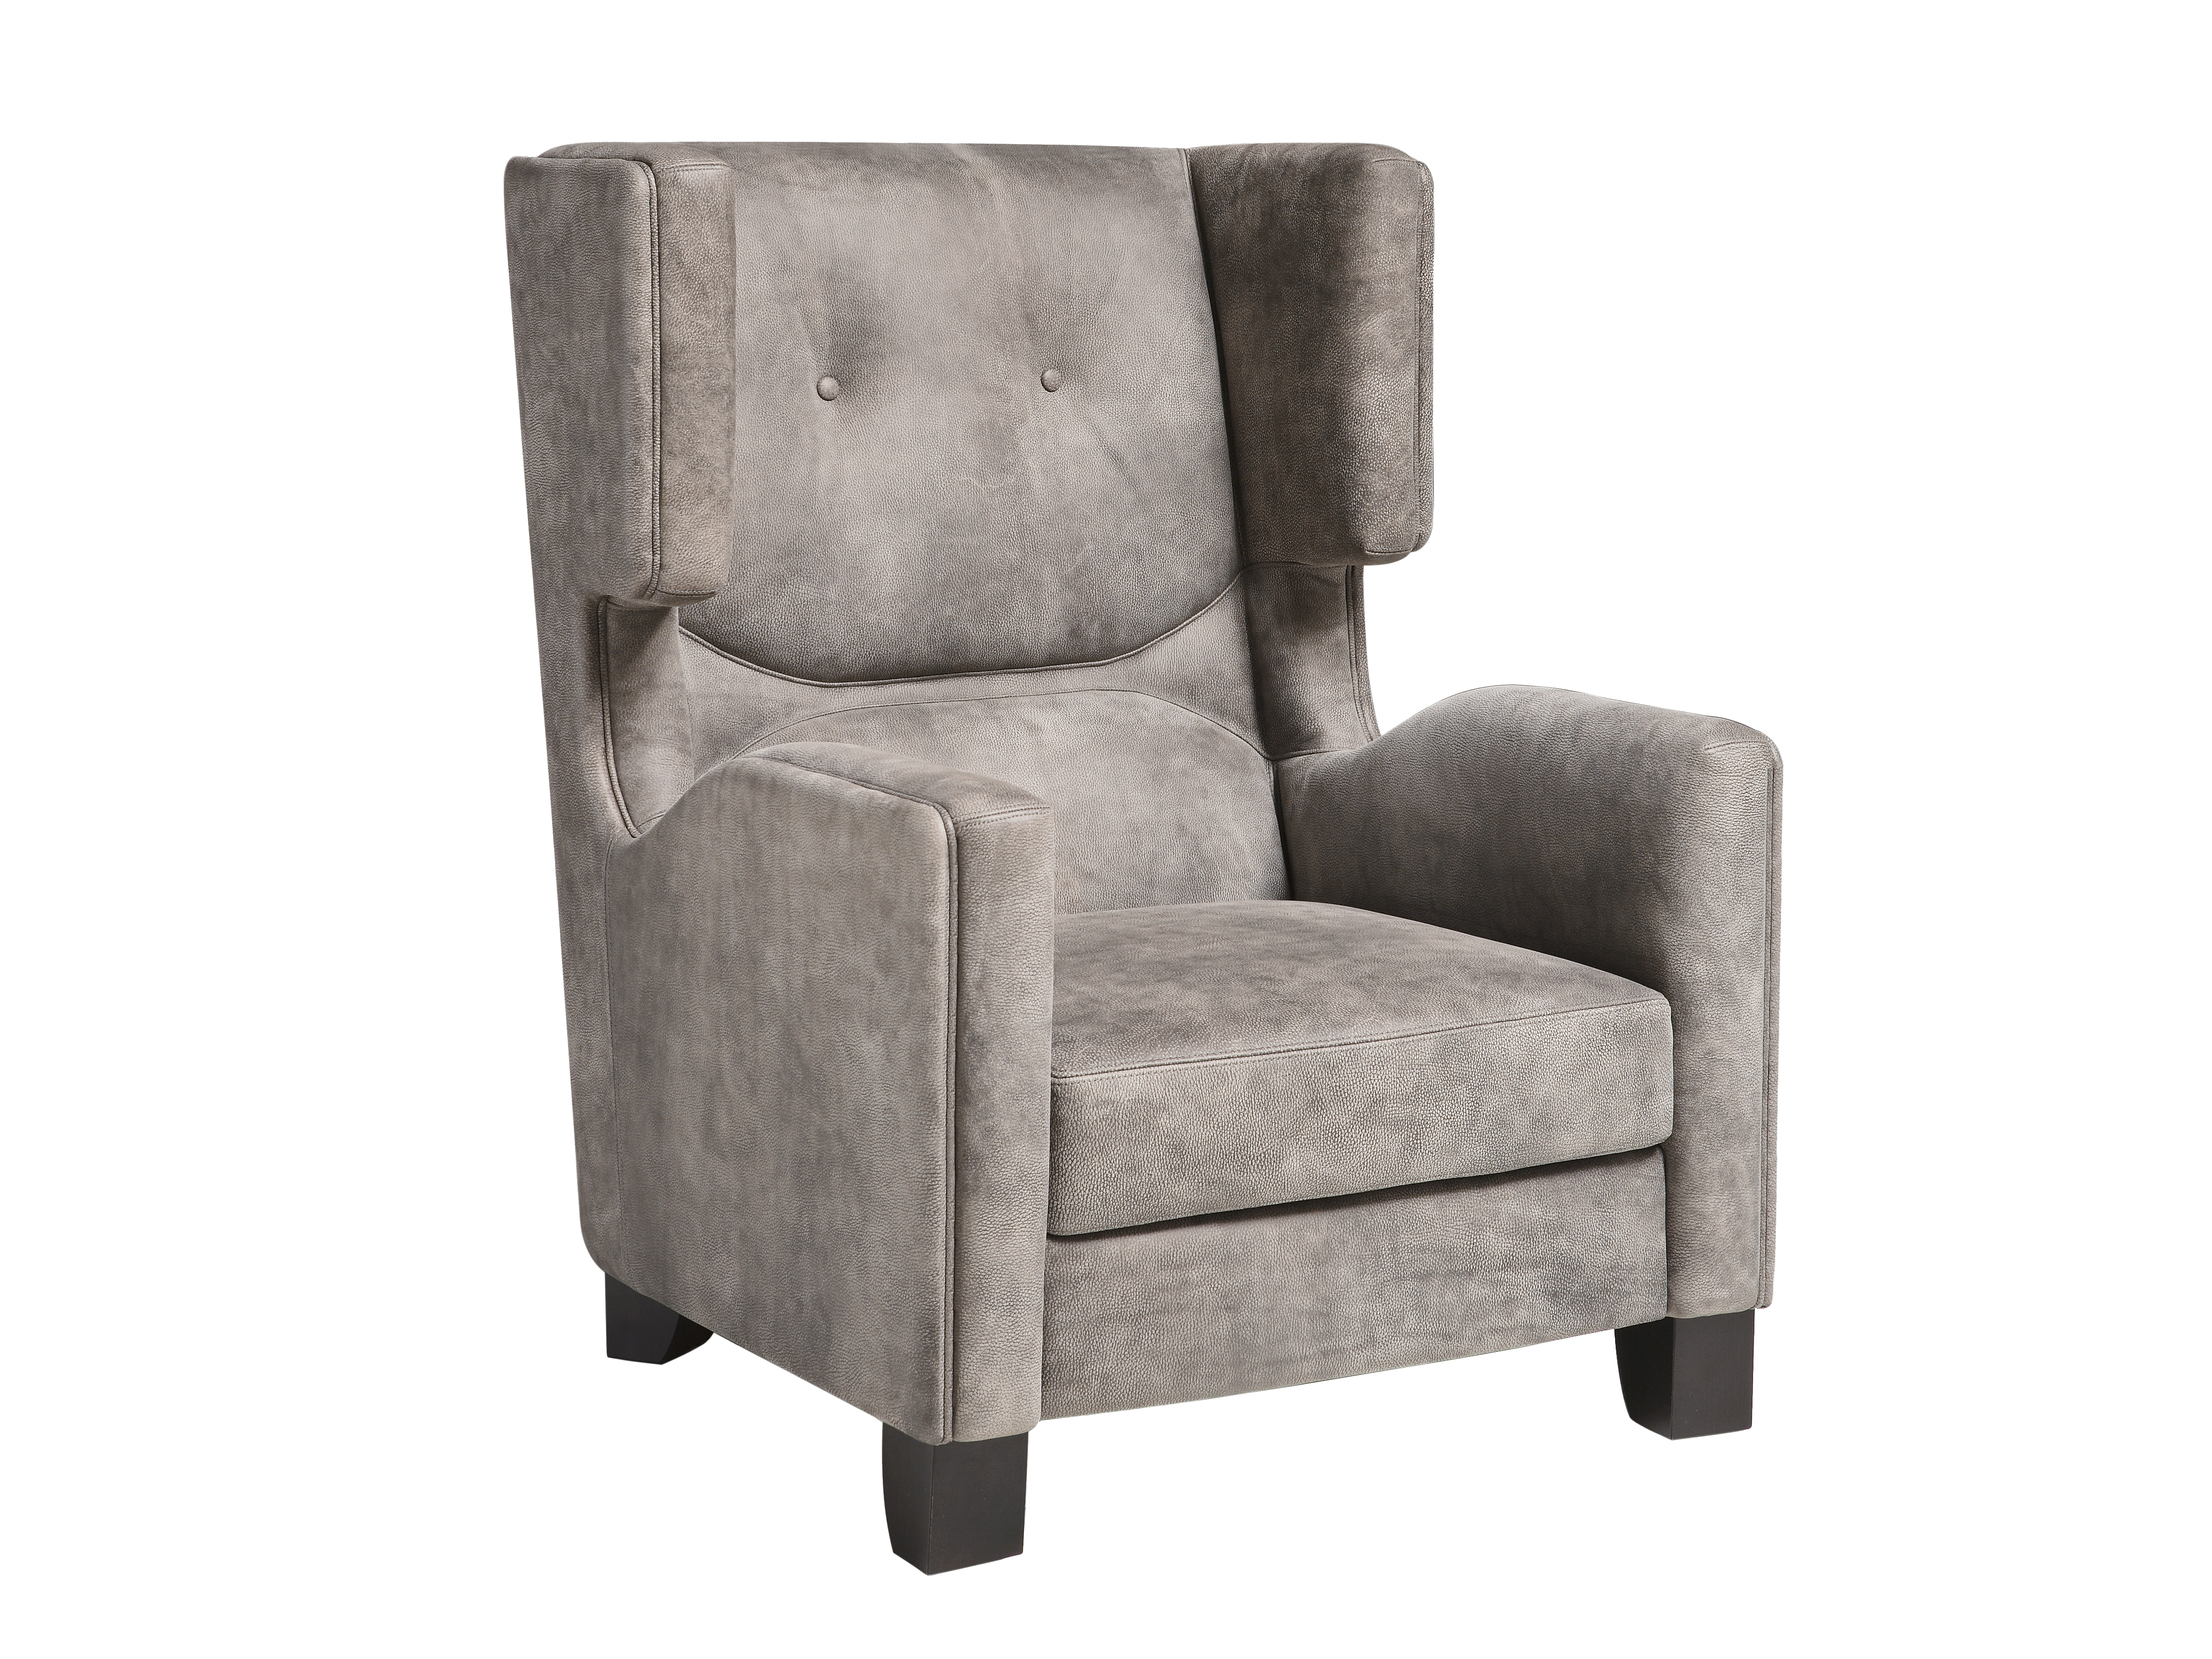 Bergere upholstered leather armchair LOUISE By Miniforms